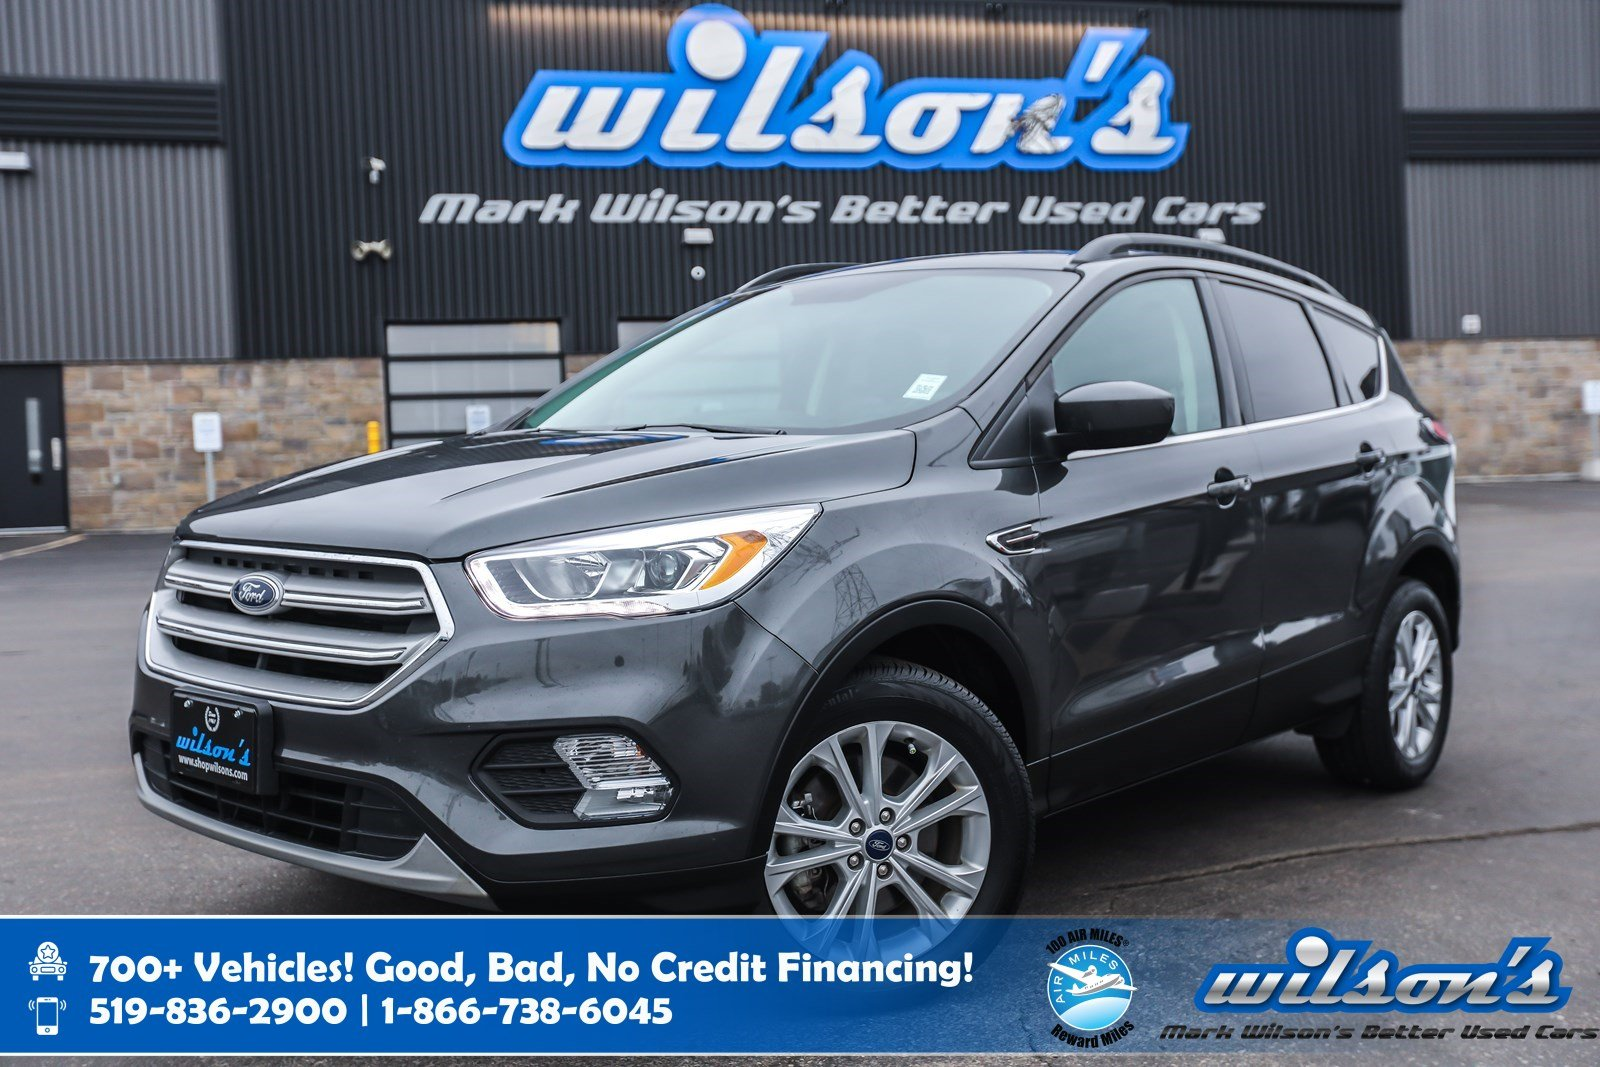 Certified Pre-Owned 2018 Ford Escape SEL 4WD, Leather, Navigation, Sunroof, Heated + Power Seats, Bluetooth and more!